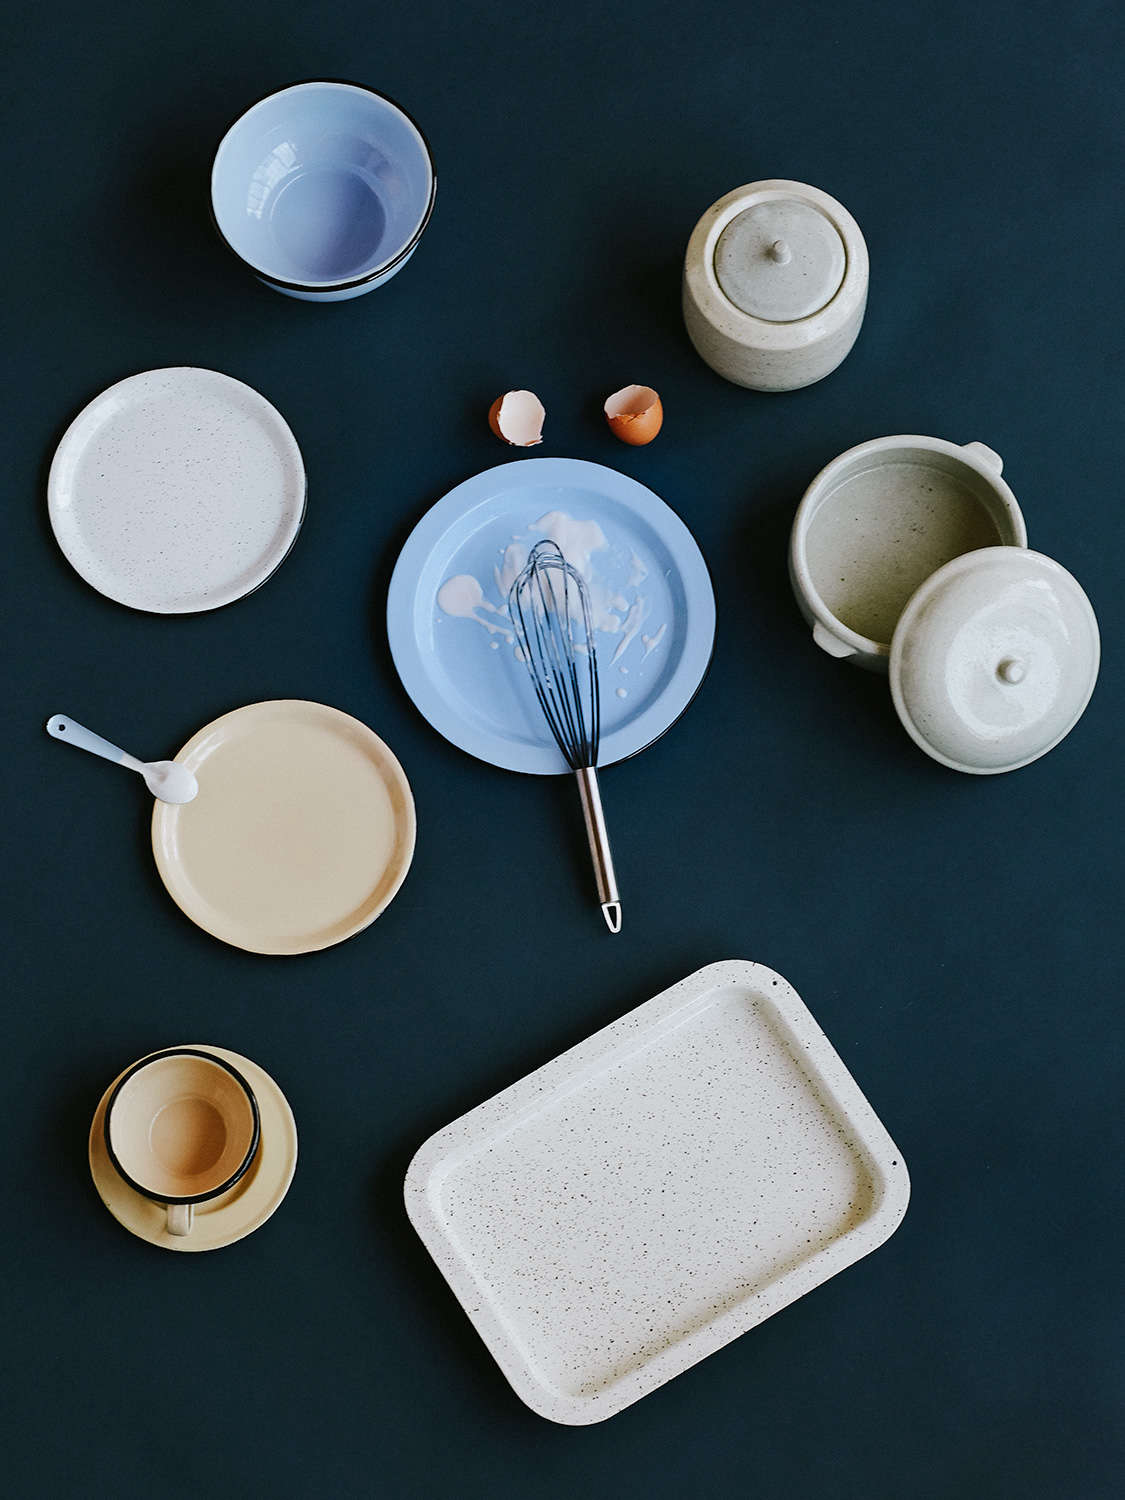 Criolla Trays and Plates by Dirk Mai for Someware on Remodelista